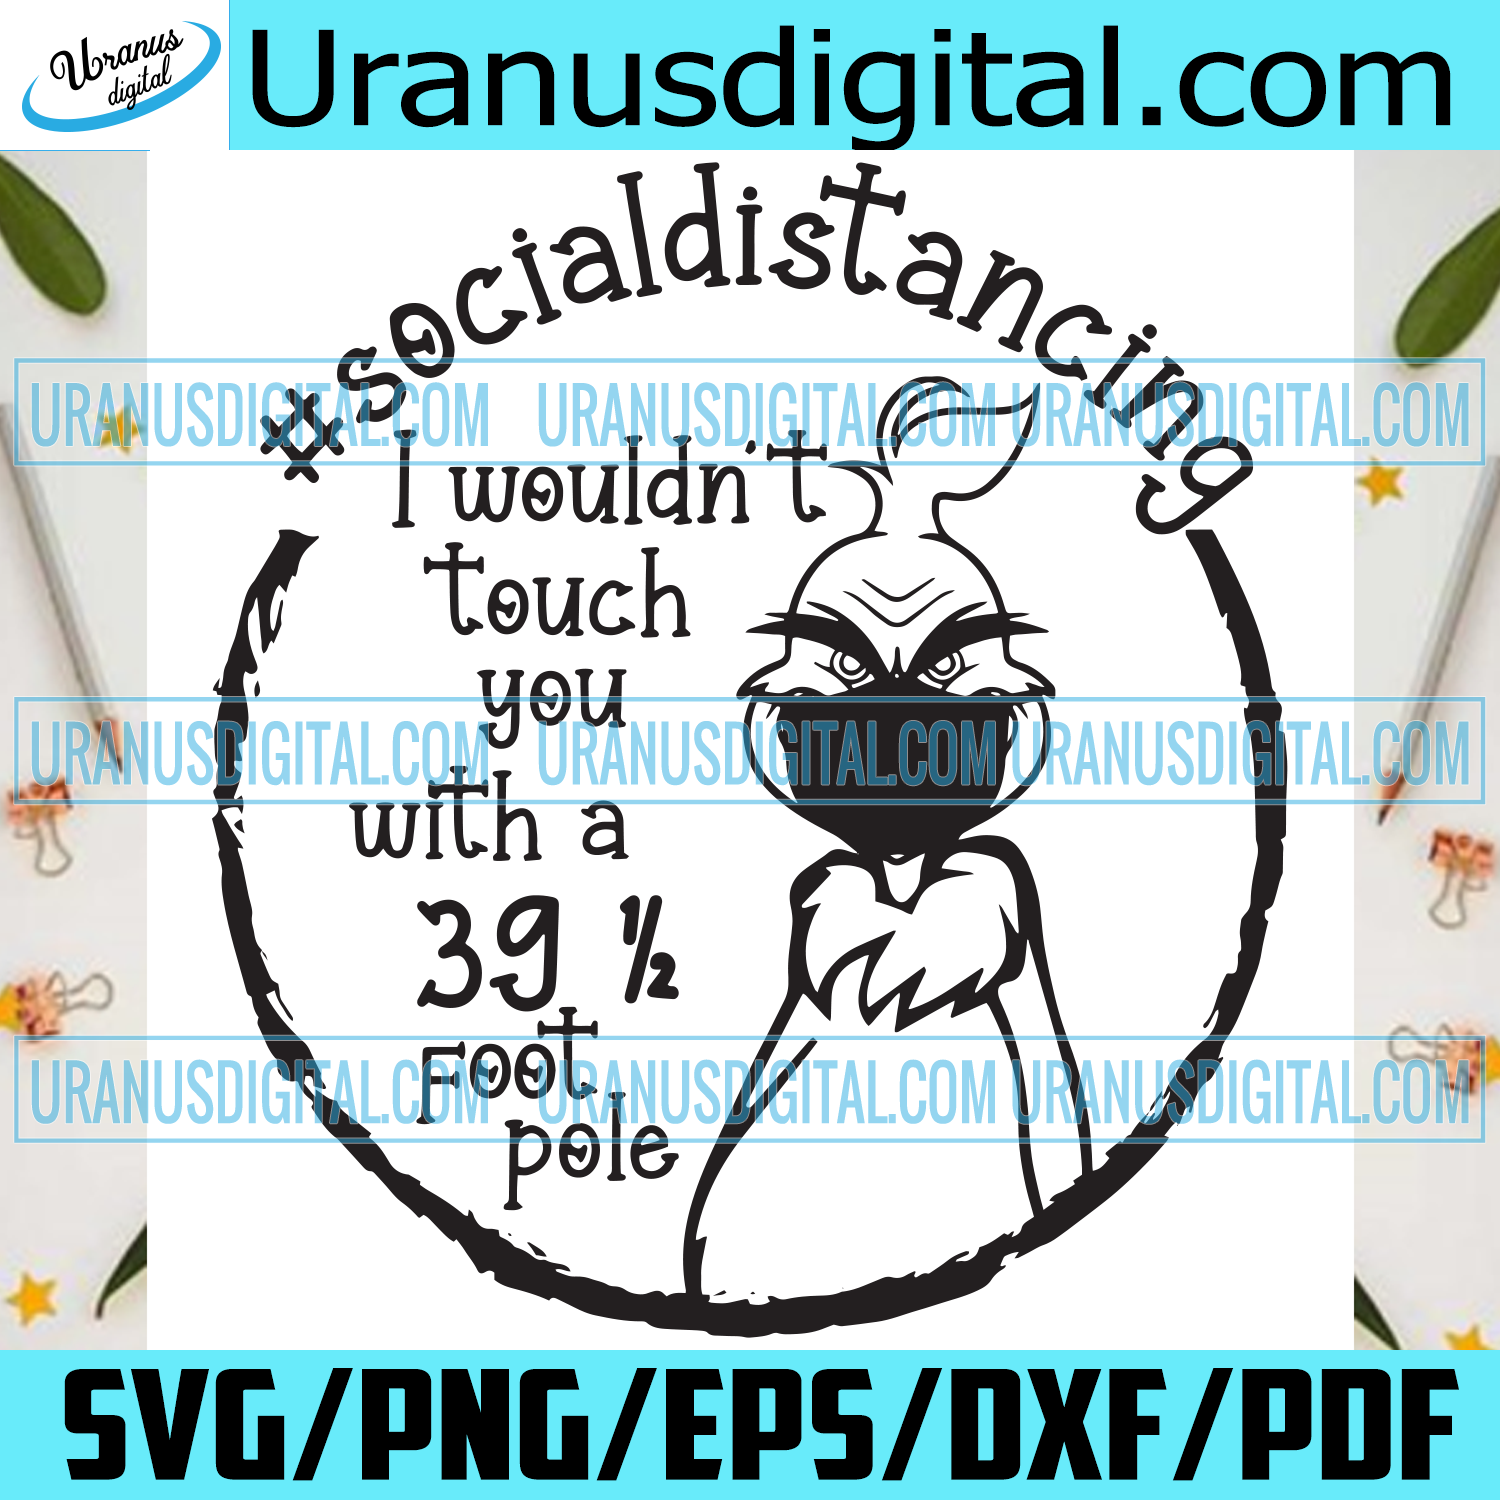 Social Distancing I Wouldnt Touch You With A 39.5 Foot Pole, Trending Svg, Grinch Svg, Love Svg, Face Mask Svg, Grinch Shirt, Grinch Gift, Grinch Lover, Grinch Design, Gift From Grinch, Heart Design, Hand Svg